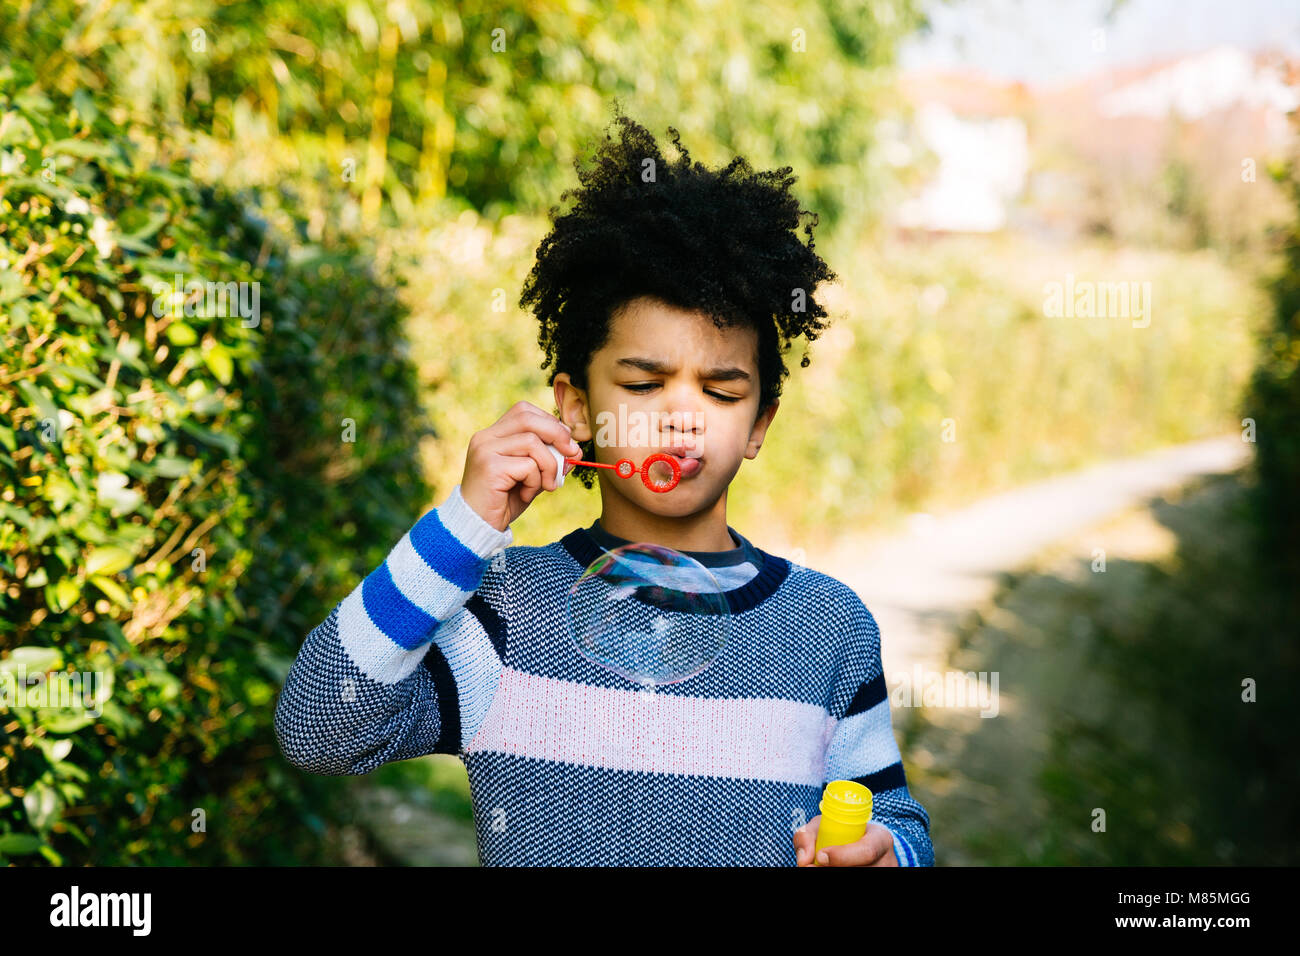 Little boy blowing bubbles on a path in the garden on a sunny day Stock Photo